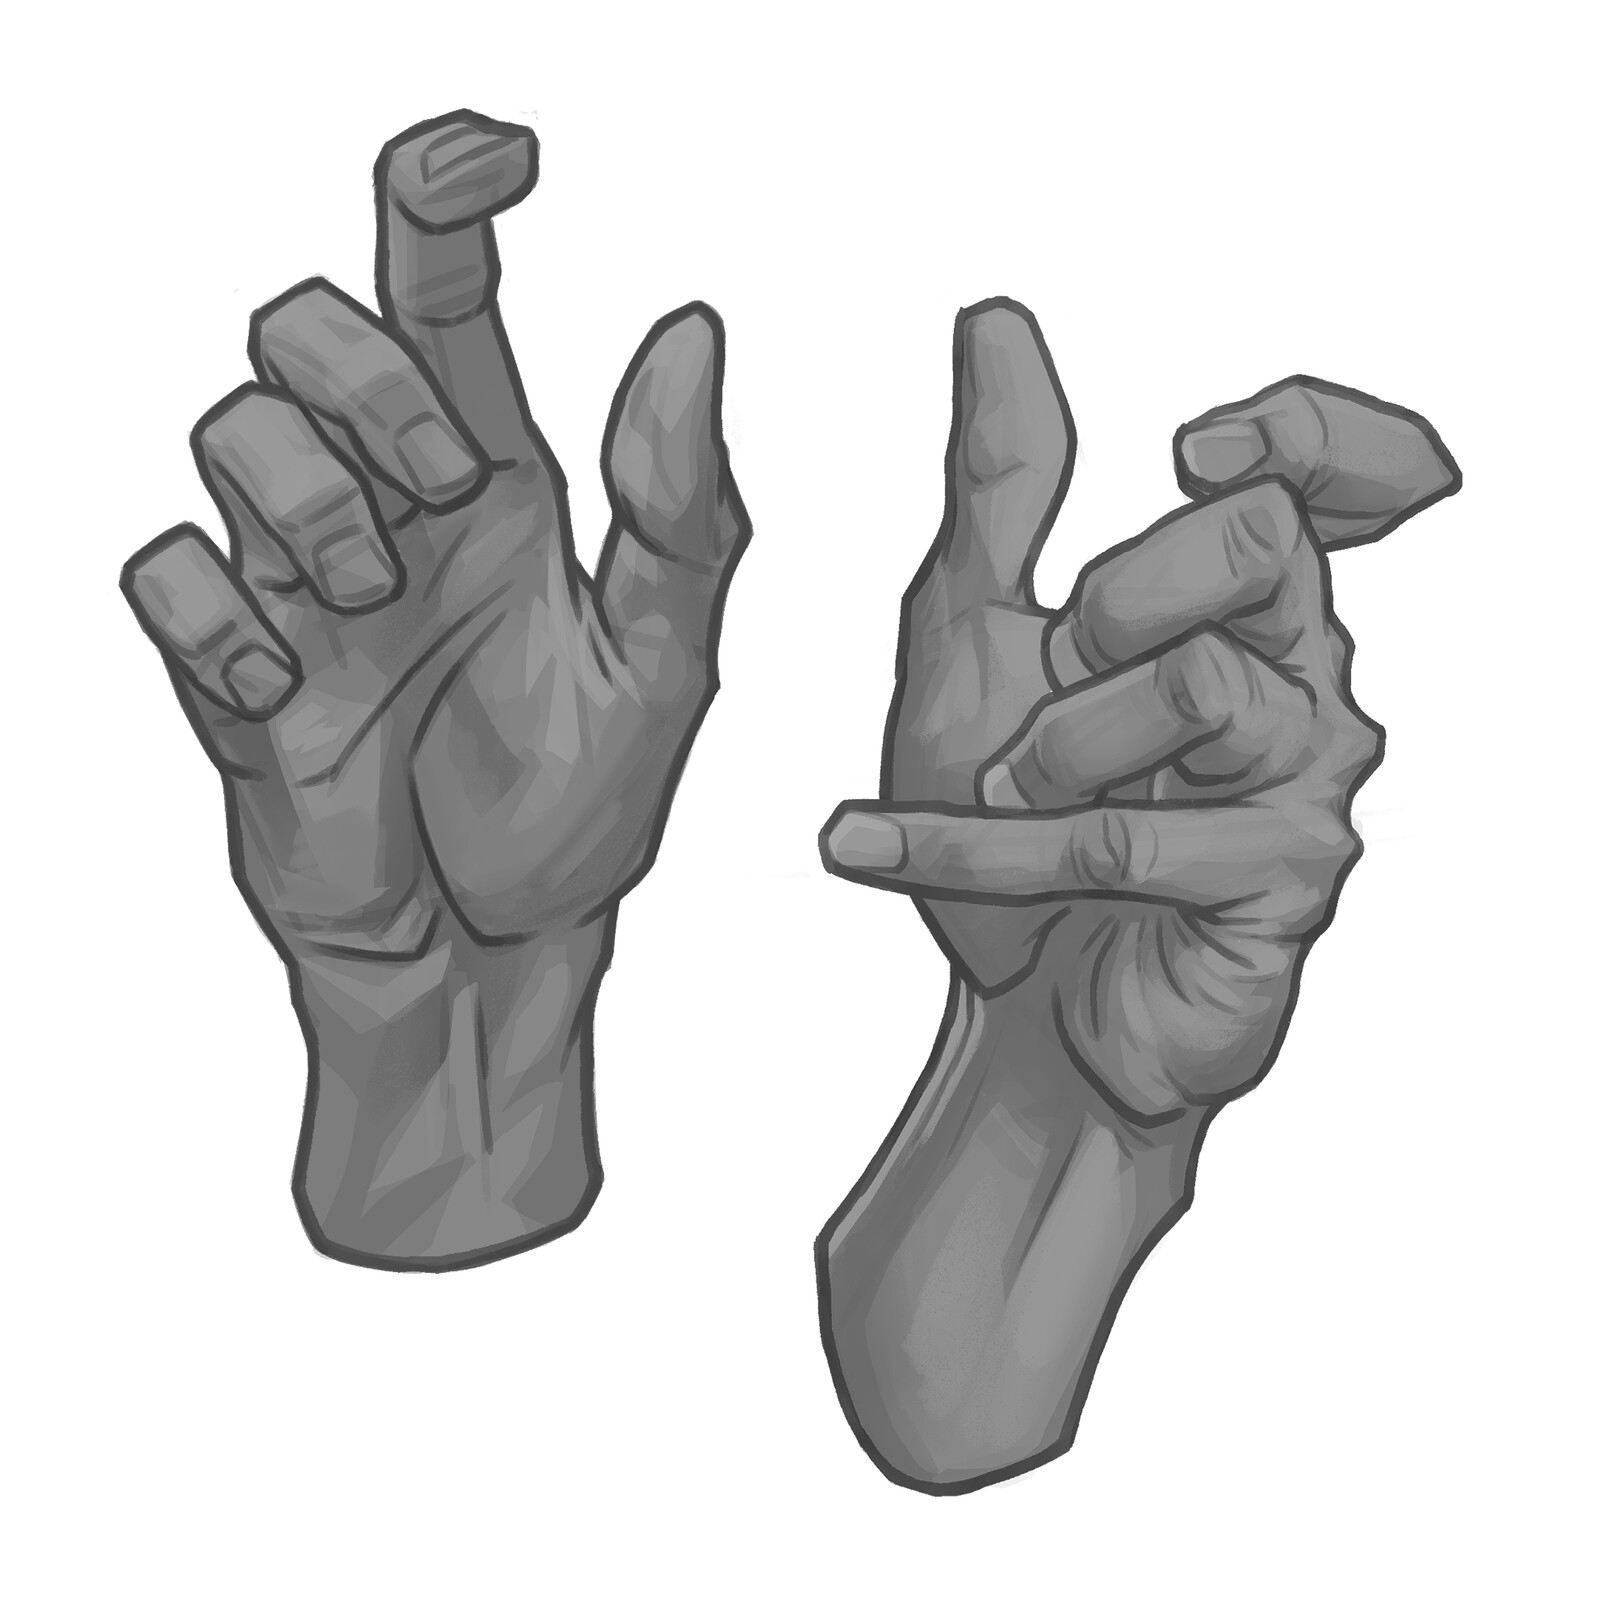 Hand Sketches (Gumroad Tutorial)